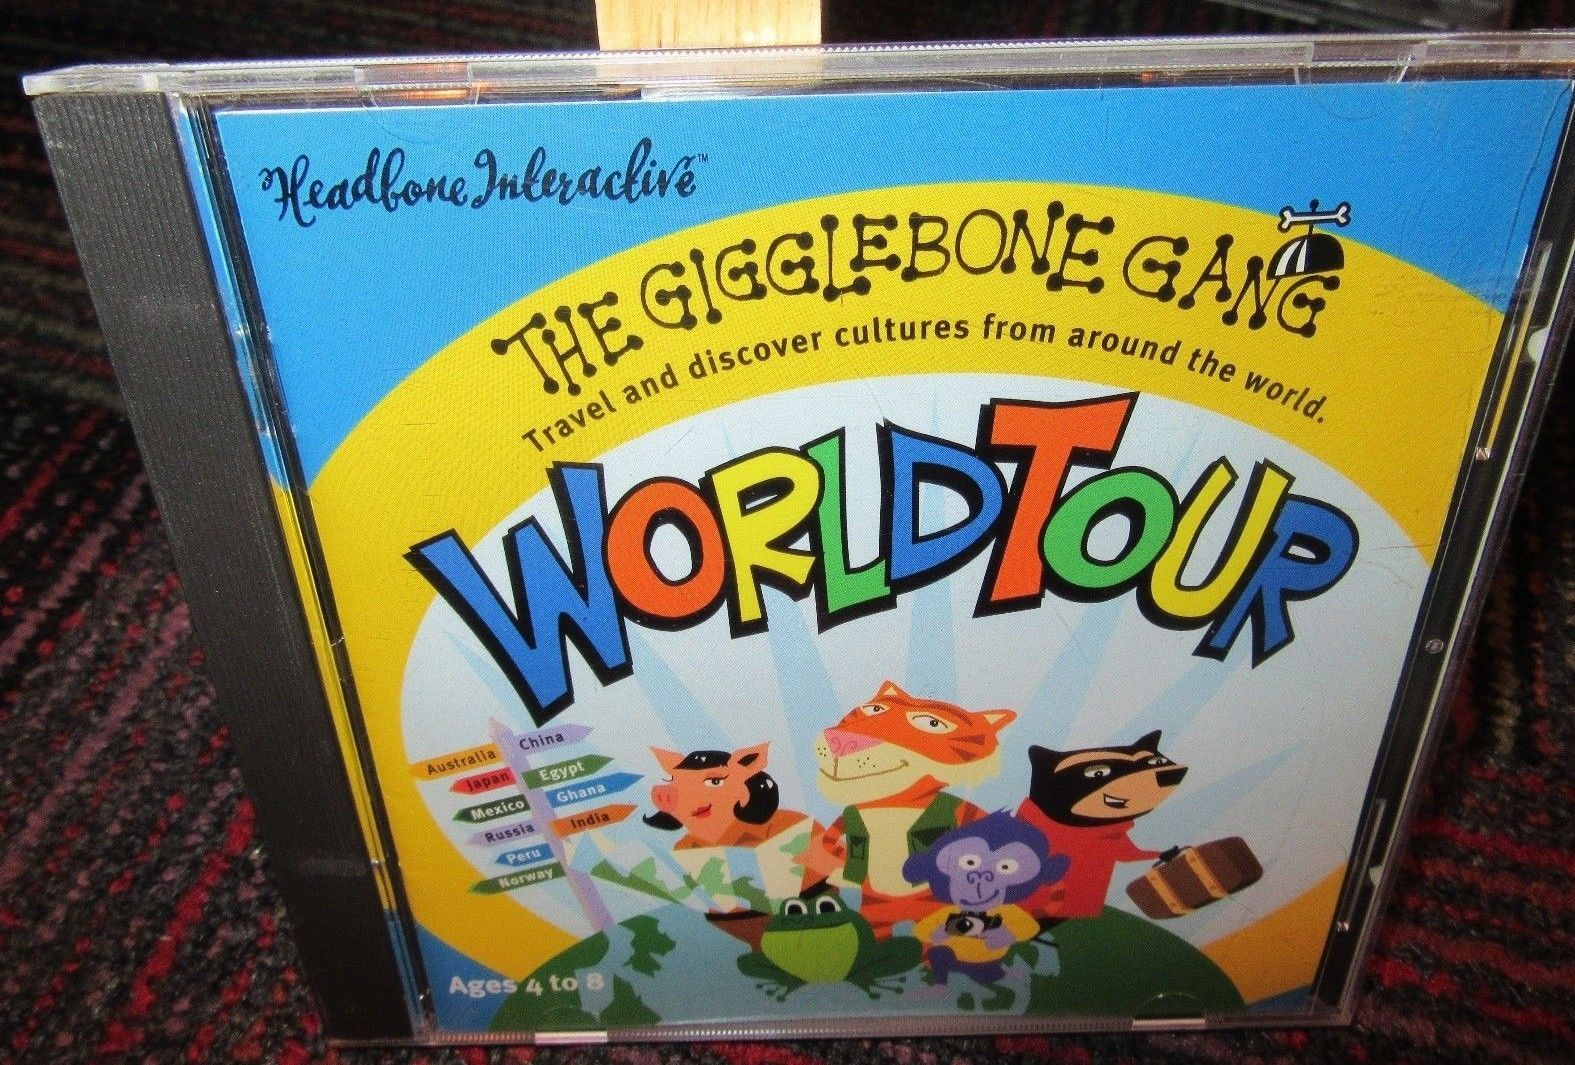 The Gigglebone Gang World Tour Pc Cd Rom And 50 Similar Items